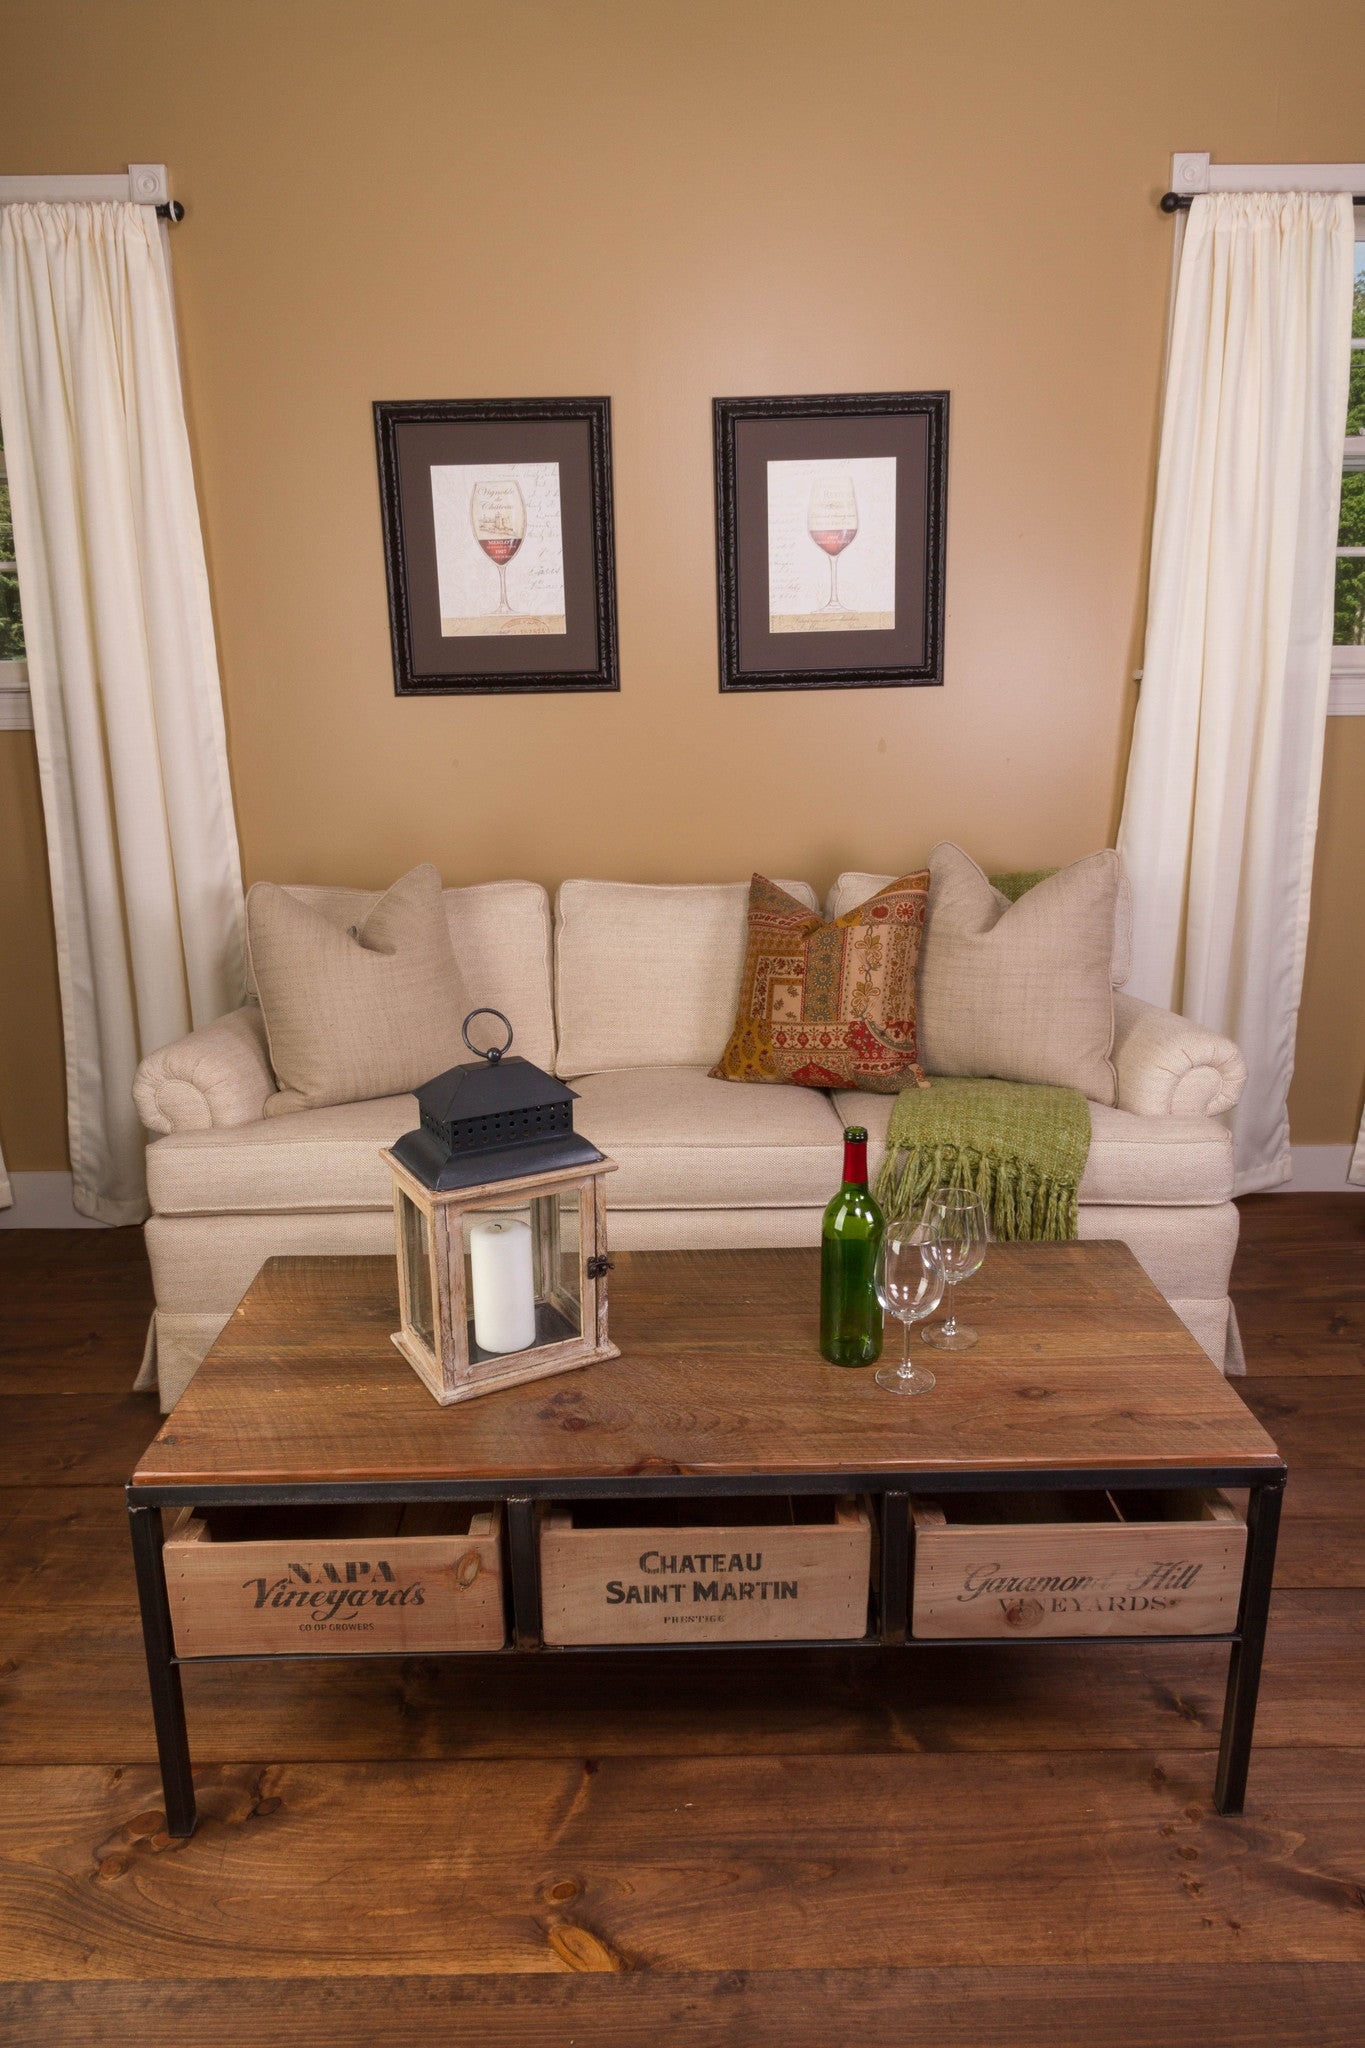 Vino Vintage Coffee Table - Donachelli's Cellars